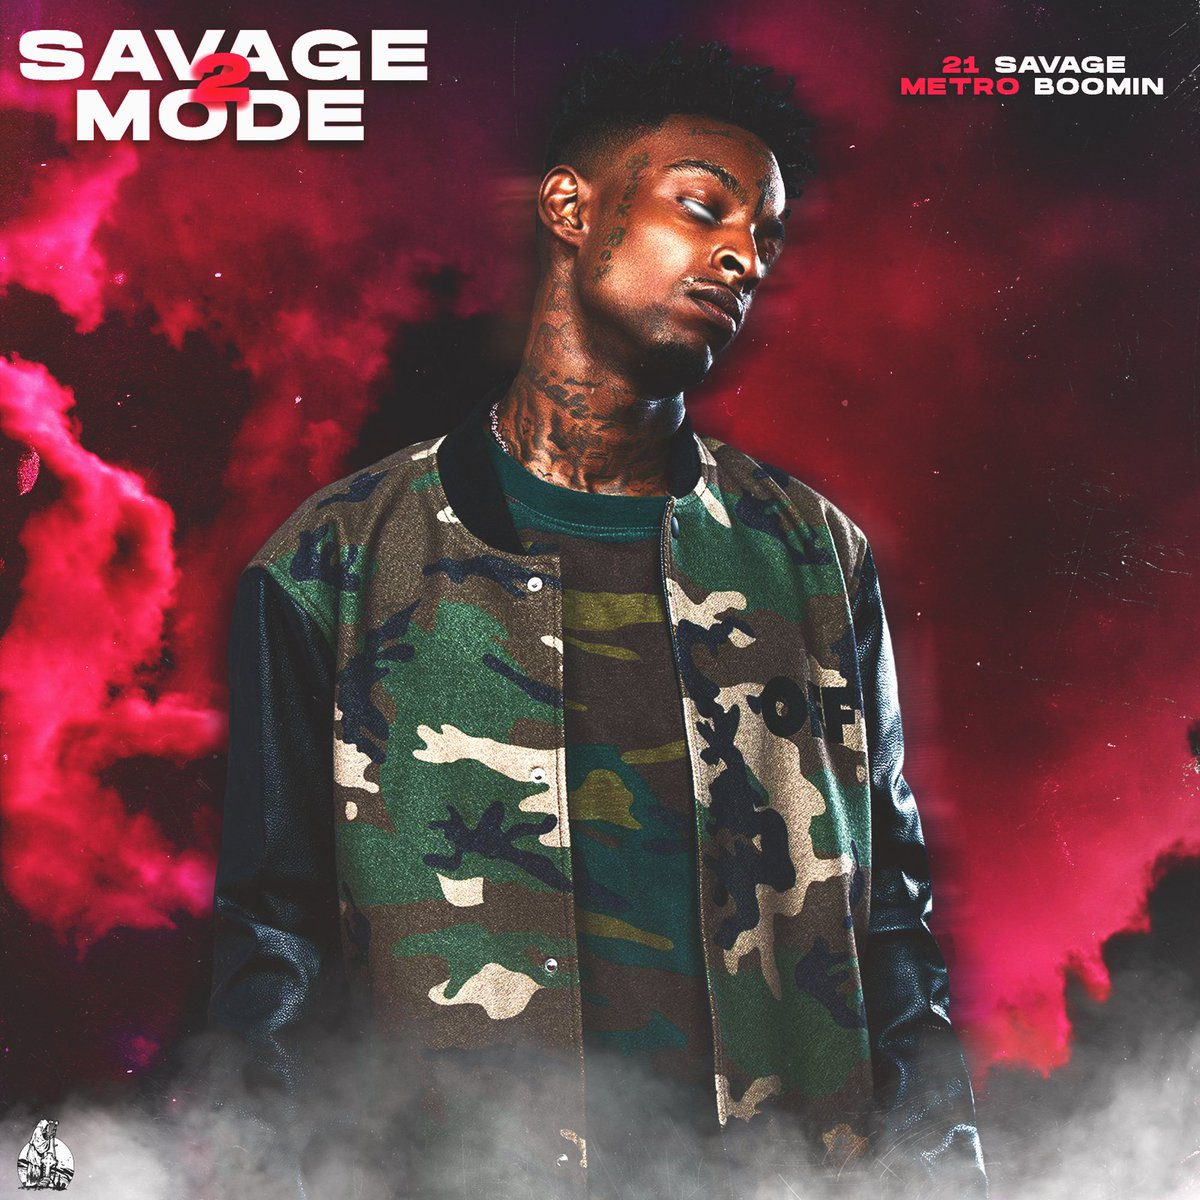 deadman on twitter savage mode 2 concept creative direction by me 21savage metroboomin concept creative direction